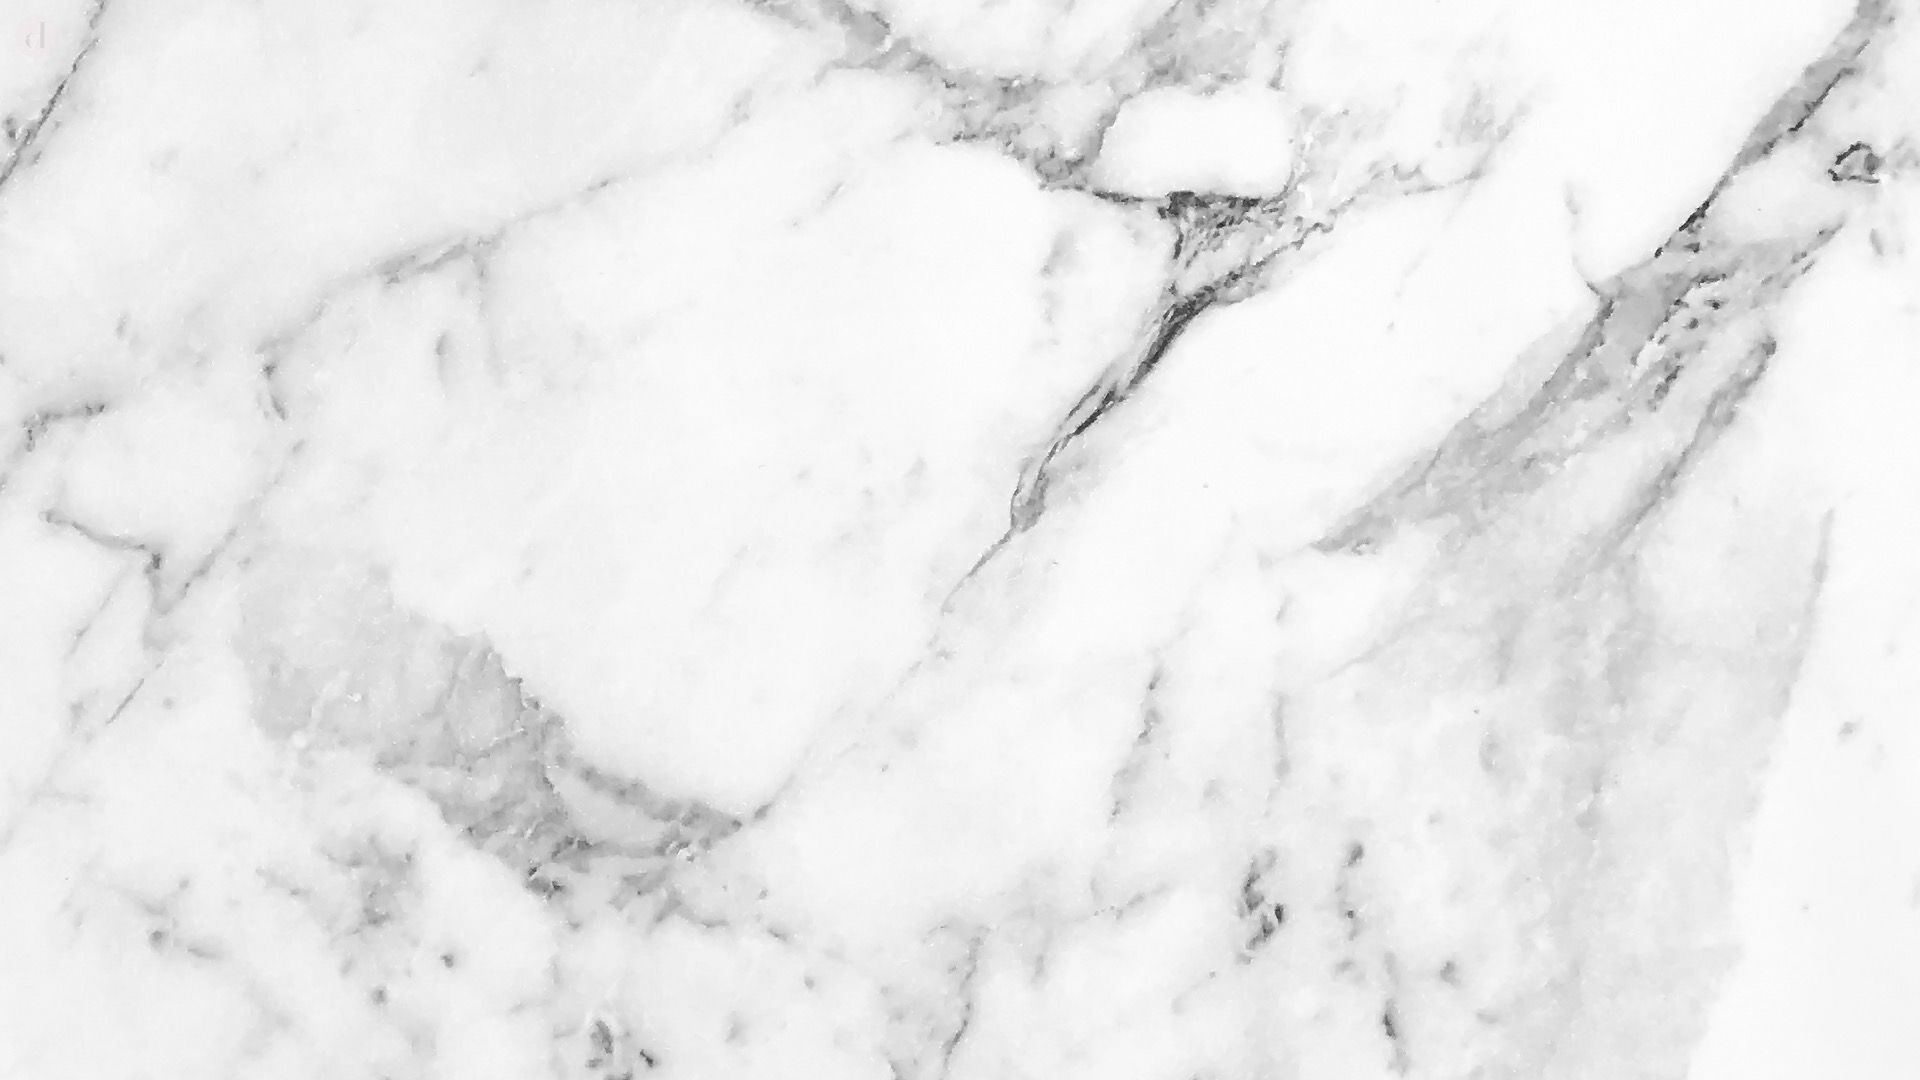 This Pin Is A Background For Your Laptop I Find The White Marble